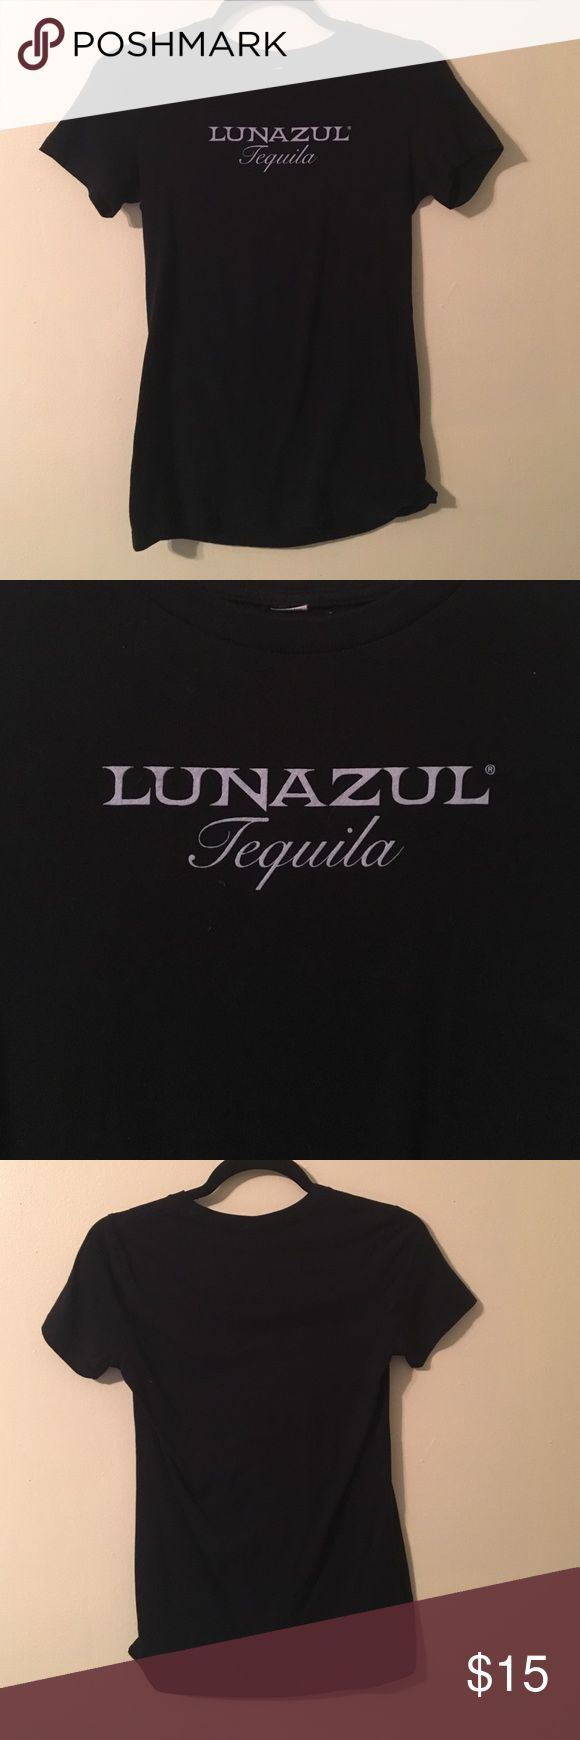 Lunazul Tequila Women's Tee Wore this for an event. Excellent condition, only worn once. All items come from a smoke free home and are shipped either on the same day or next day the order was placed. Tops Tees - Short Sleeve